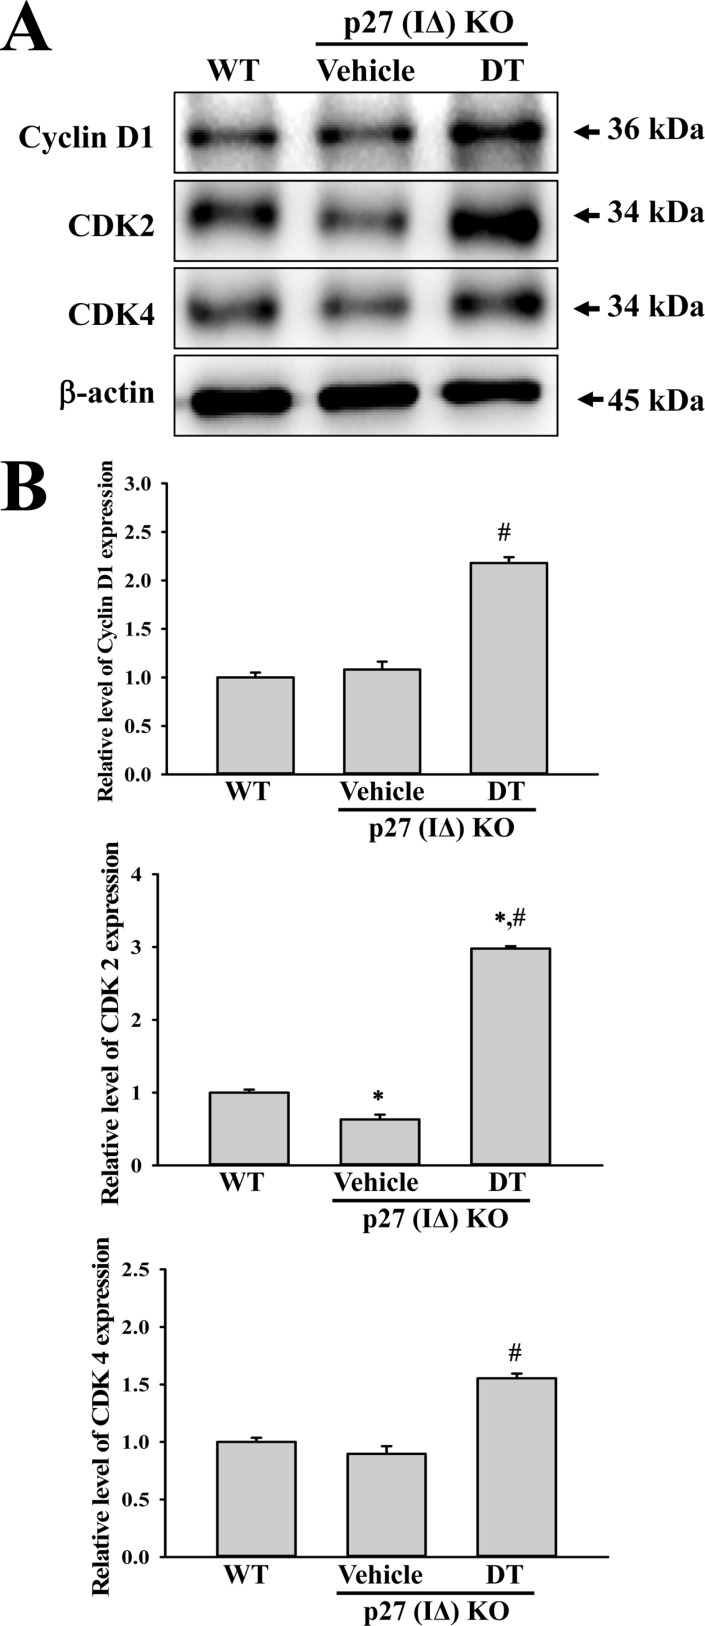 Expression analysis of cell-cycle regulator proteins. An alteration in the expressions of Cyclin D1, CDK2 and CDK4 proteins were determined in DT-treated p27 (IΔ) KO mice by Western blot assays using HRP-labeled anti-rabbit IgG antibody. Band intensities were determined using an imaging densitometer, and the expression level of 6 proteins were evaluated relative to the intensity of actin bands. The data represents the means±SD (n=8). *, indicates P